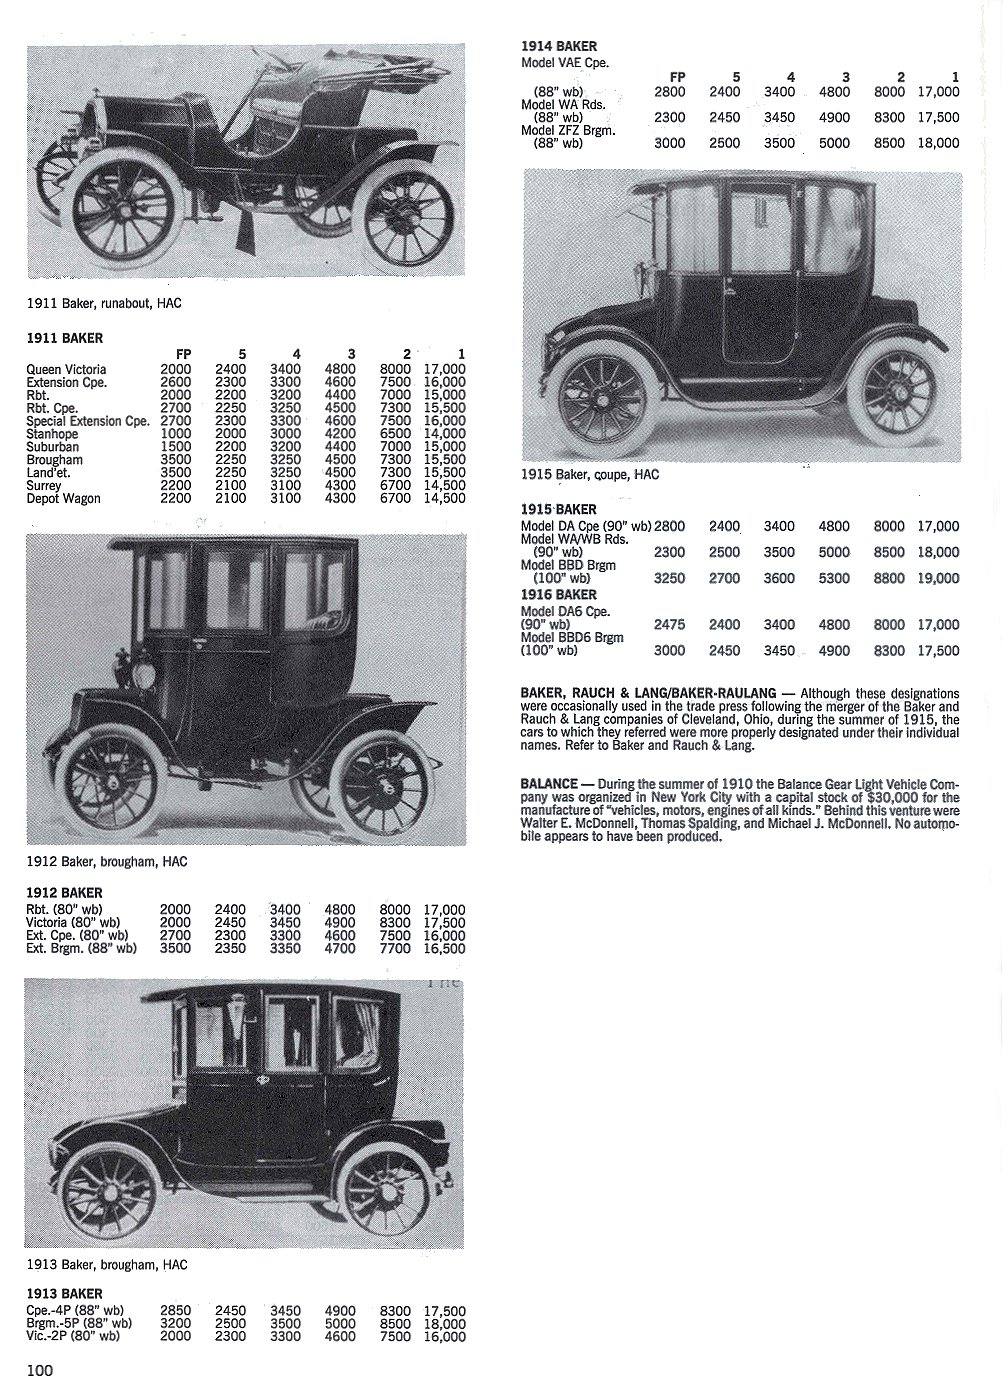 BAKER Electric Cleveland, Ohio 1899-1916 Standard Catalog of AMERICAN CARS 1805-1942 By Beverly Rae Kimes & Henry Austin Clark, Jr. Krause Publications ISBN: 0-87341-428-4 8.5″x11″ page 100